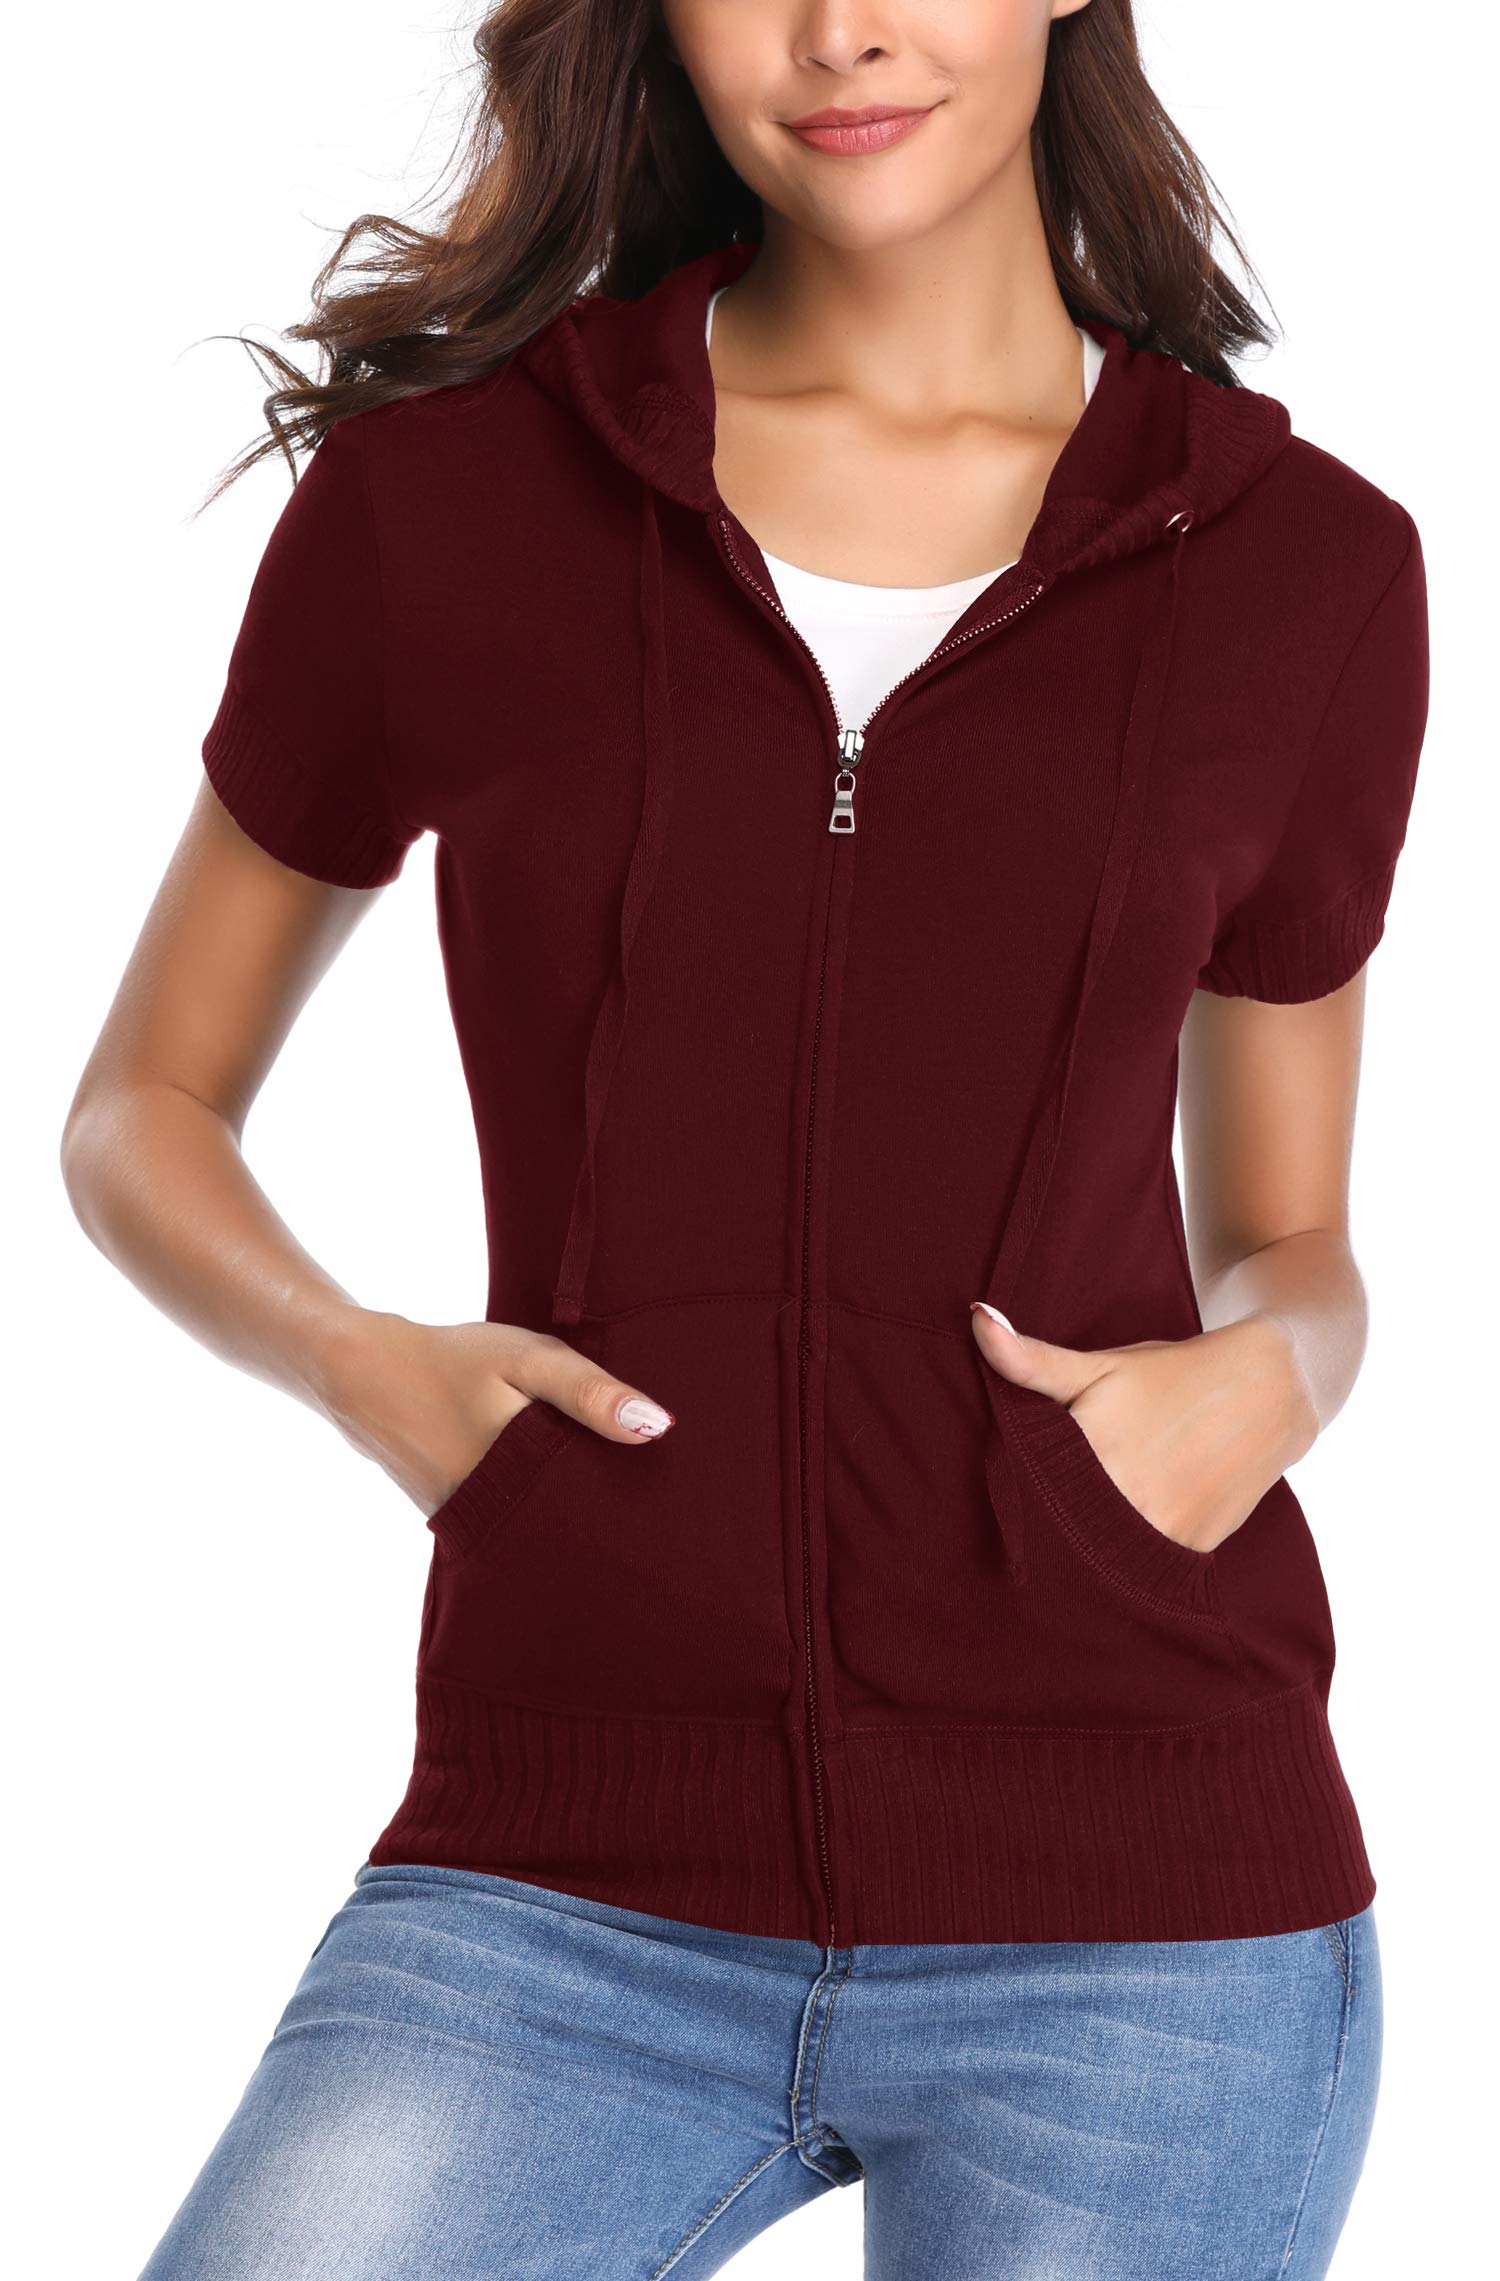 MISS MOLY Women Hoodie Lightweight Short Sleeve Jackets Zip up Spring with 2 Patch Pockets Red M